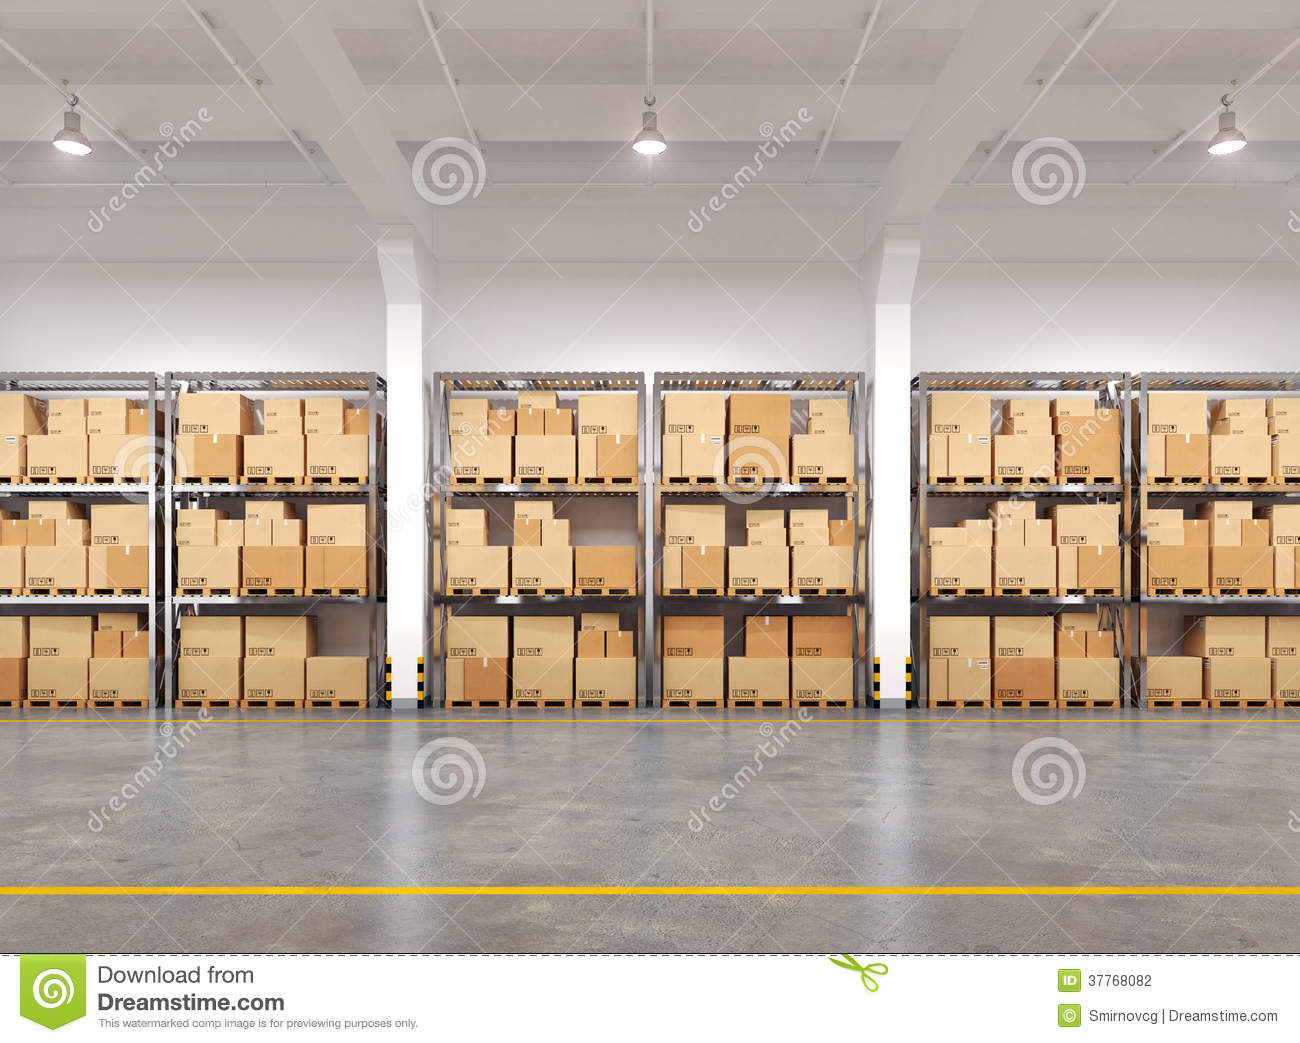 Warehouse with many racks and boxes